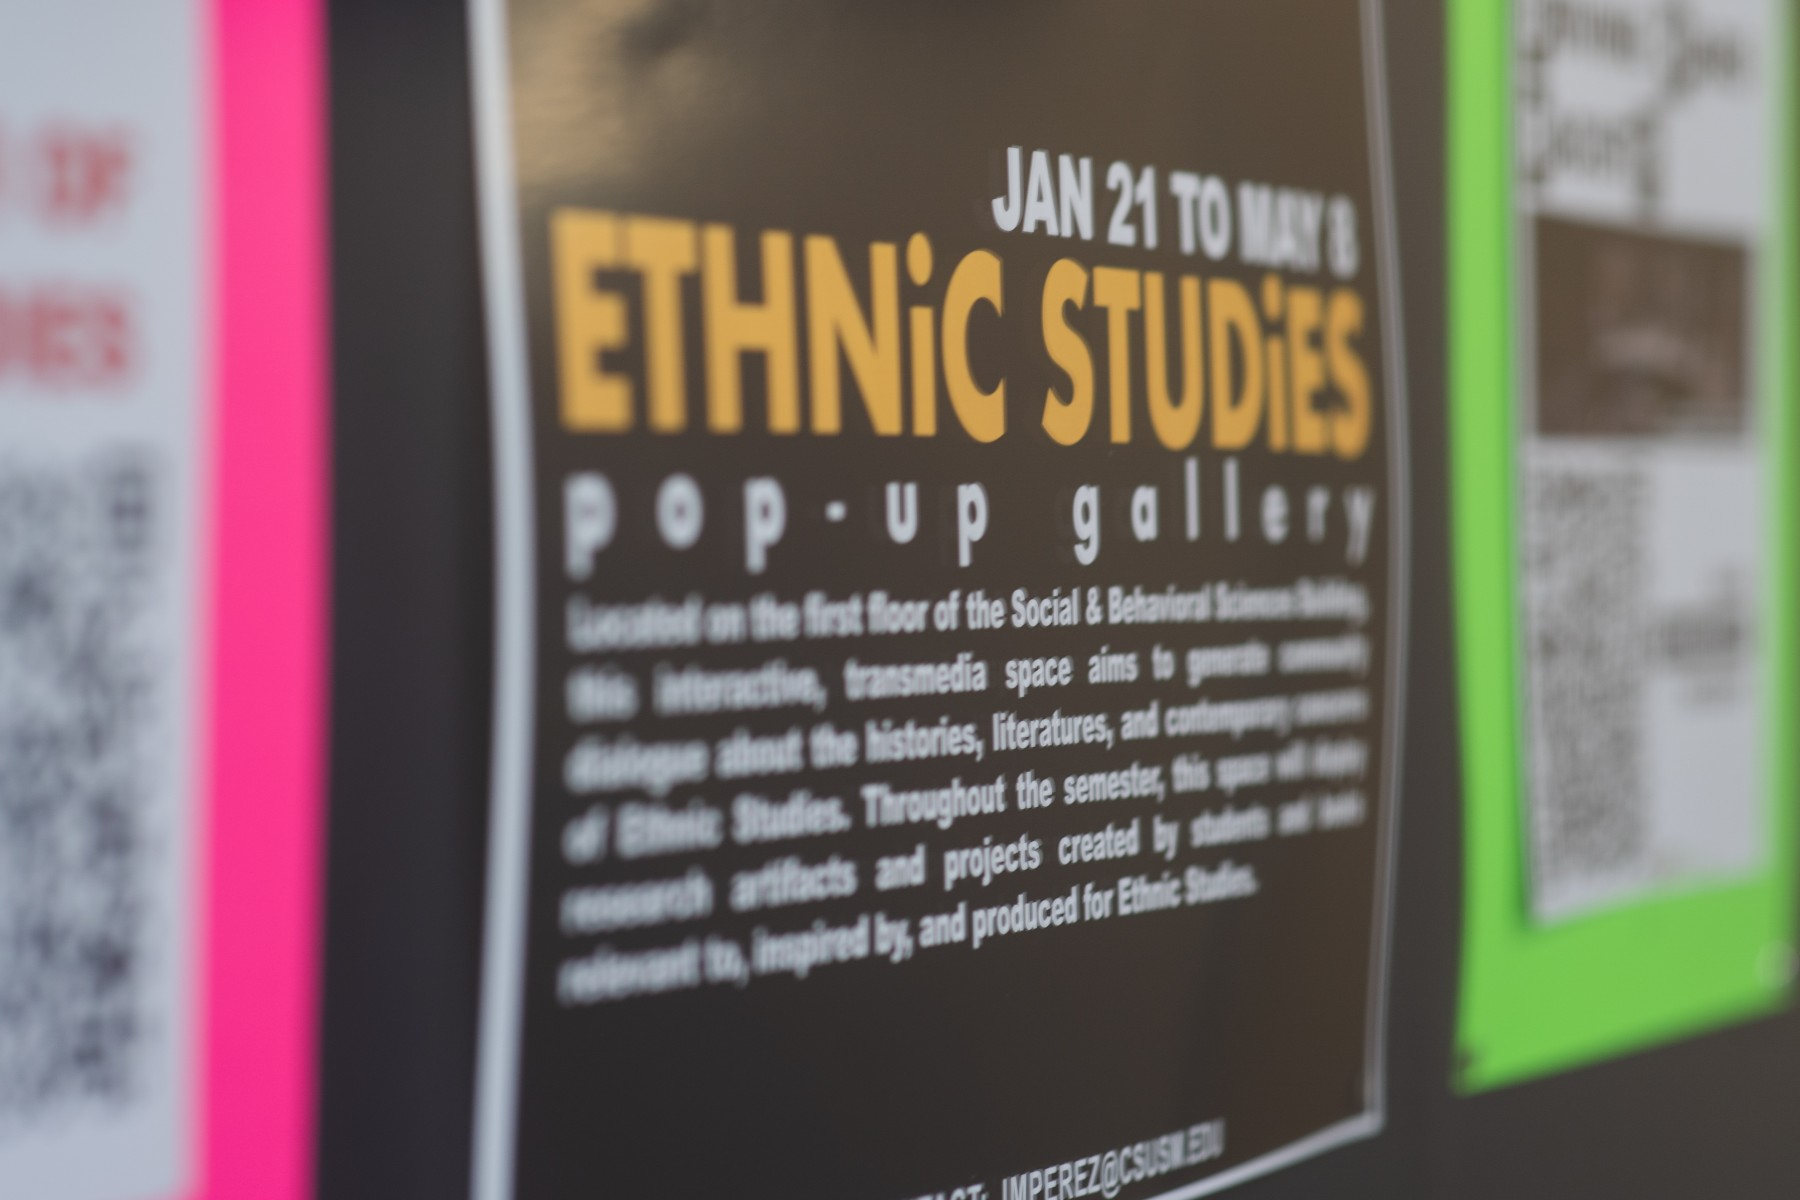 The Ethnic Studies Pop-Up Gallery, an interactive campus-wide project located on the first floor of the Social and Behavioral Sciences Building, is showcasing events and projects through May 8.